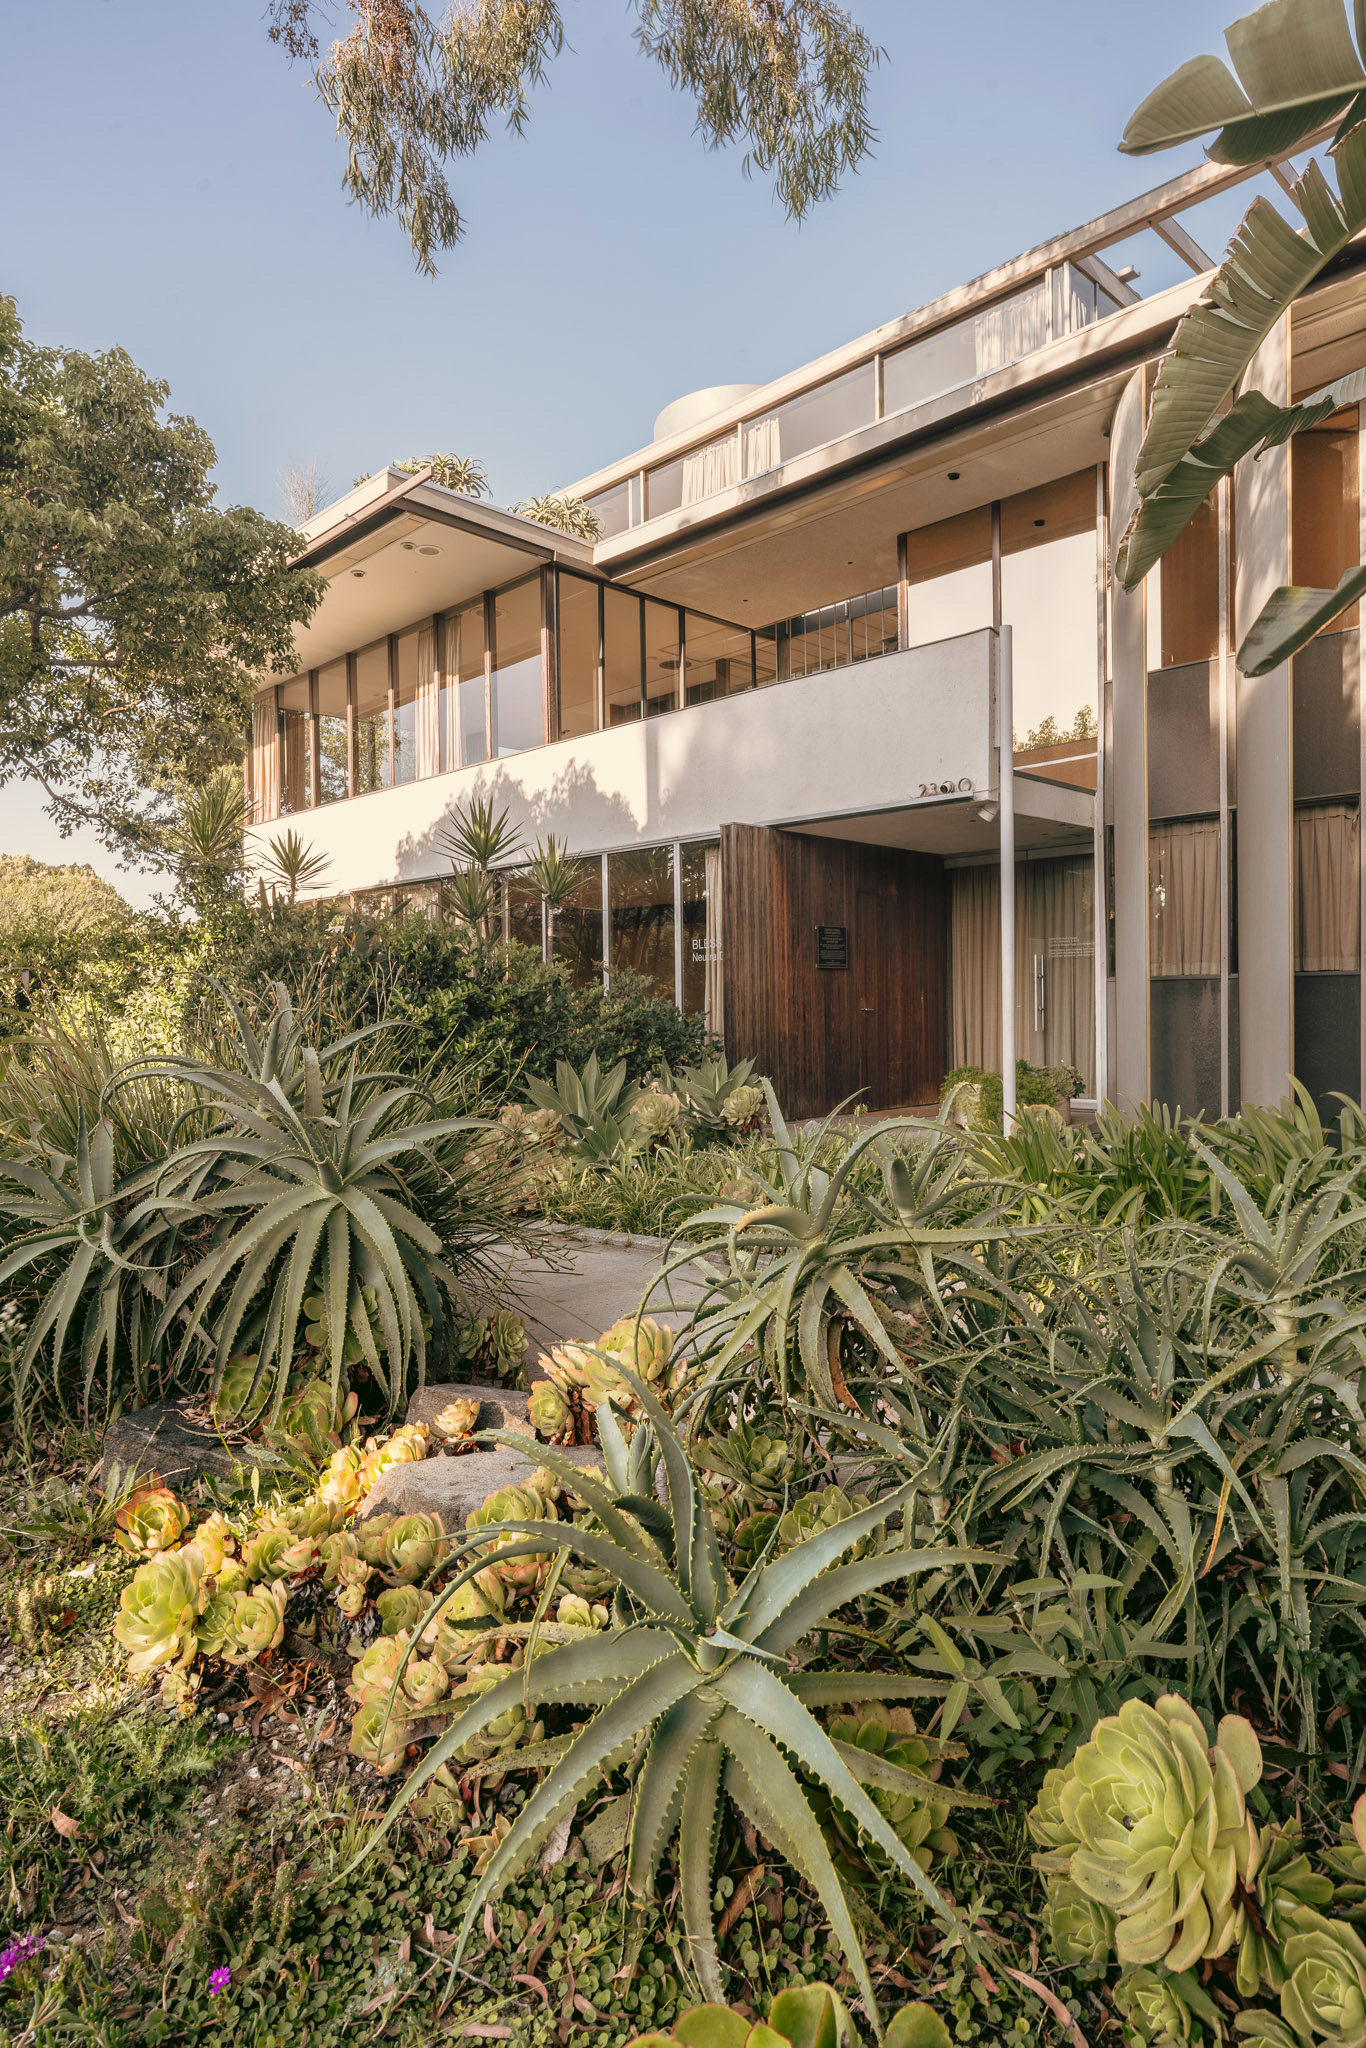 As with most of Neutra's structures, VDL II blends in with its surrounding environment.